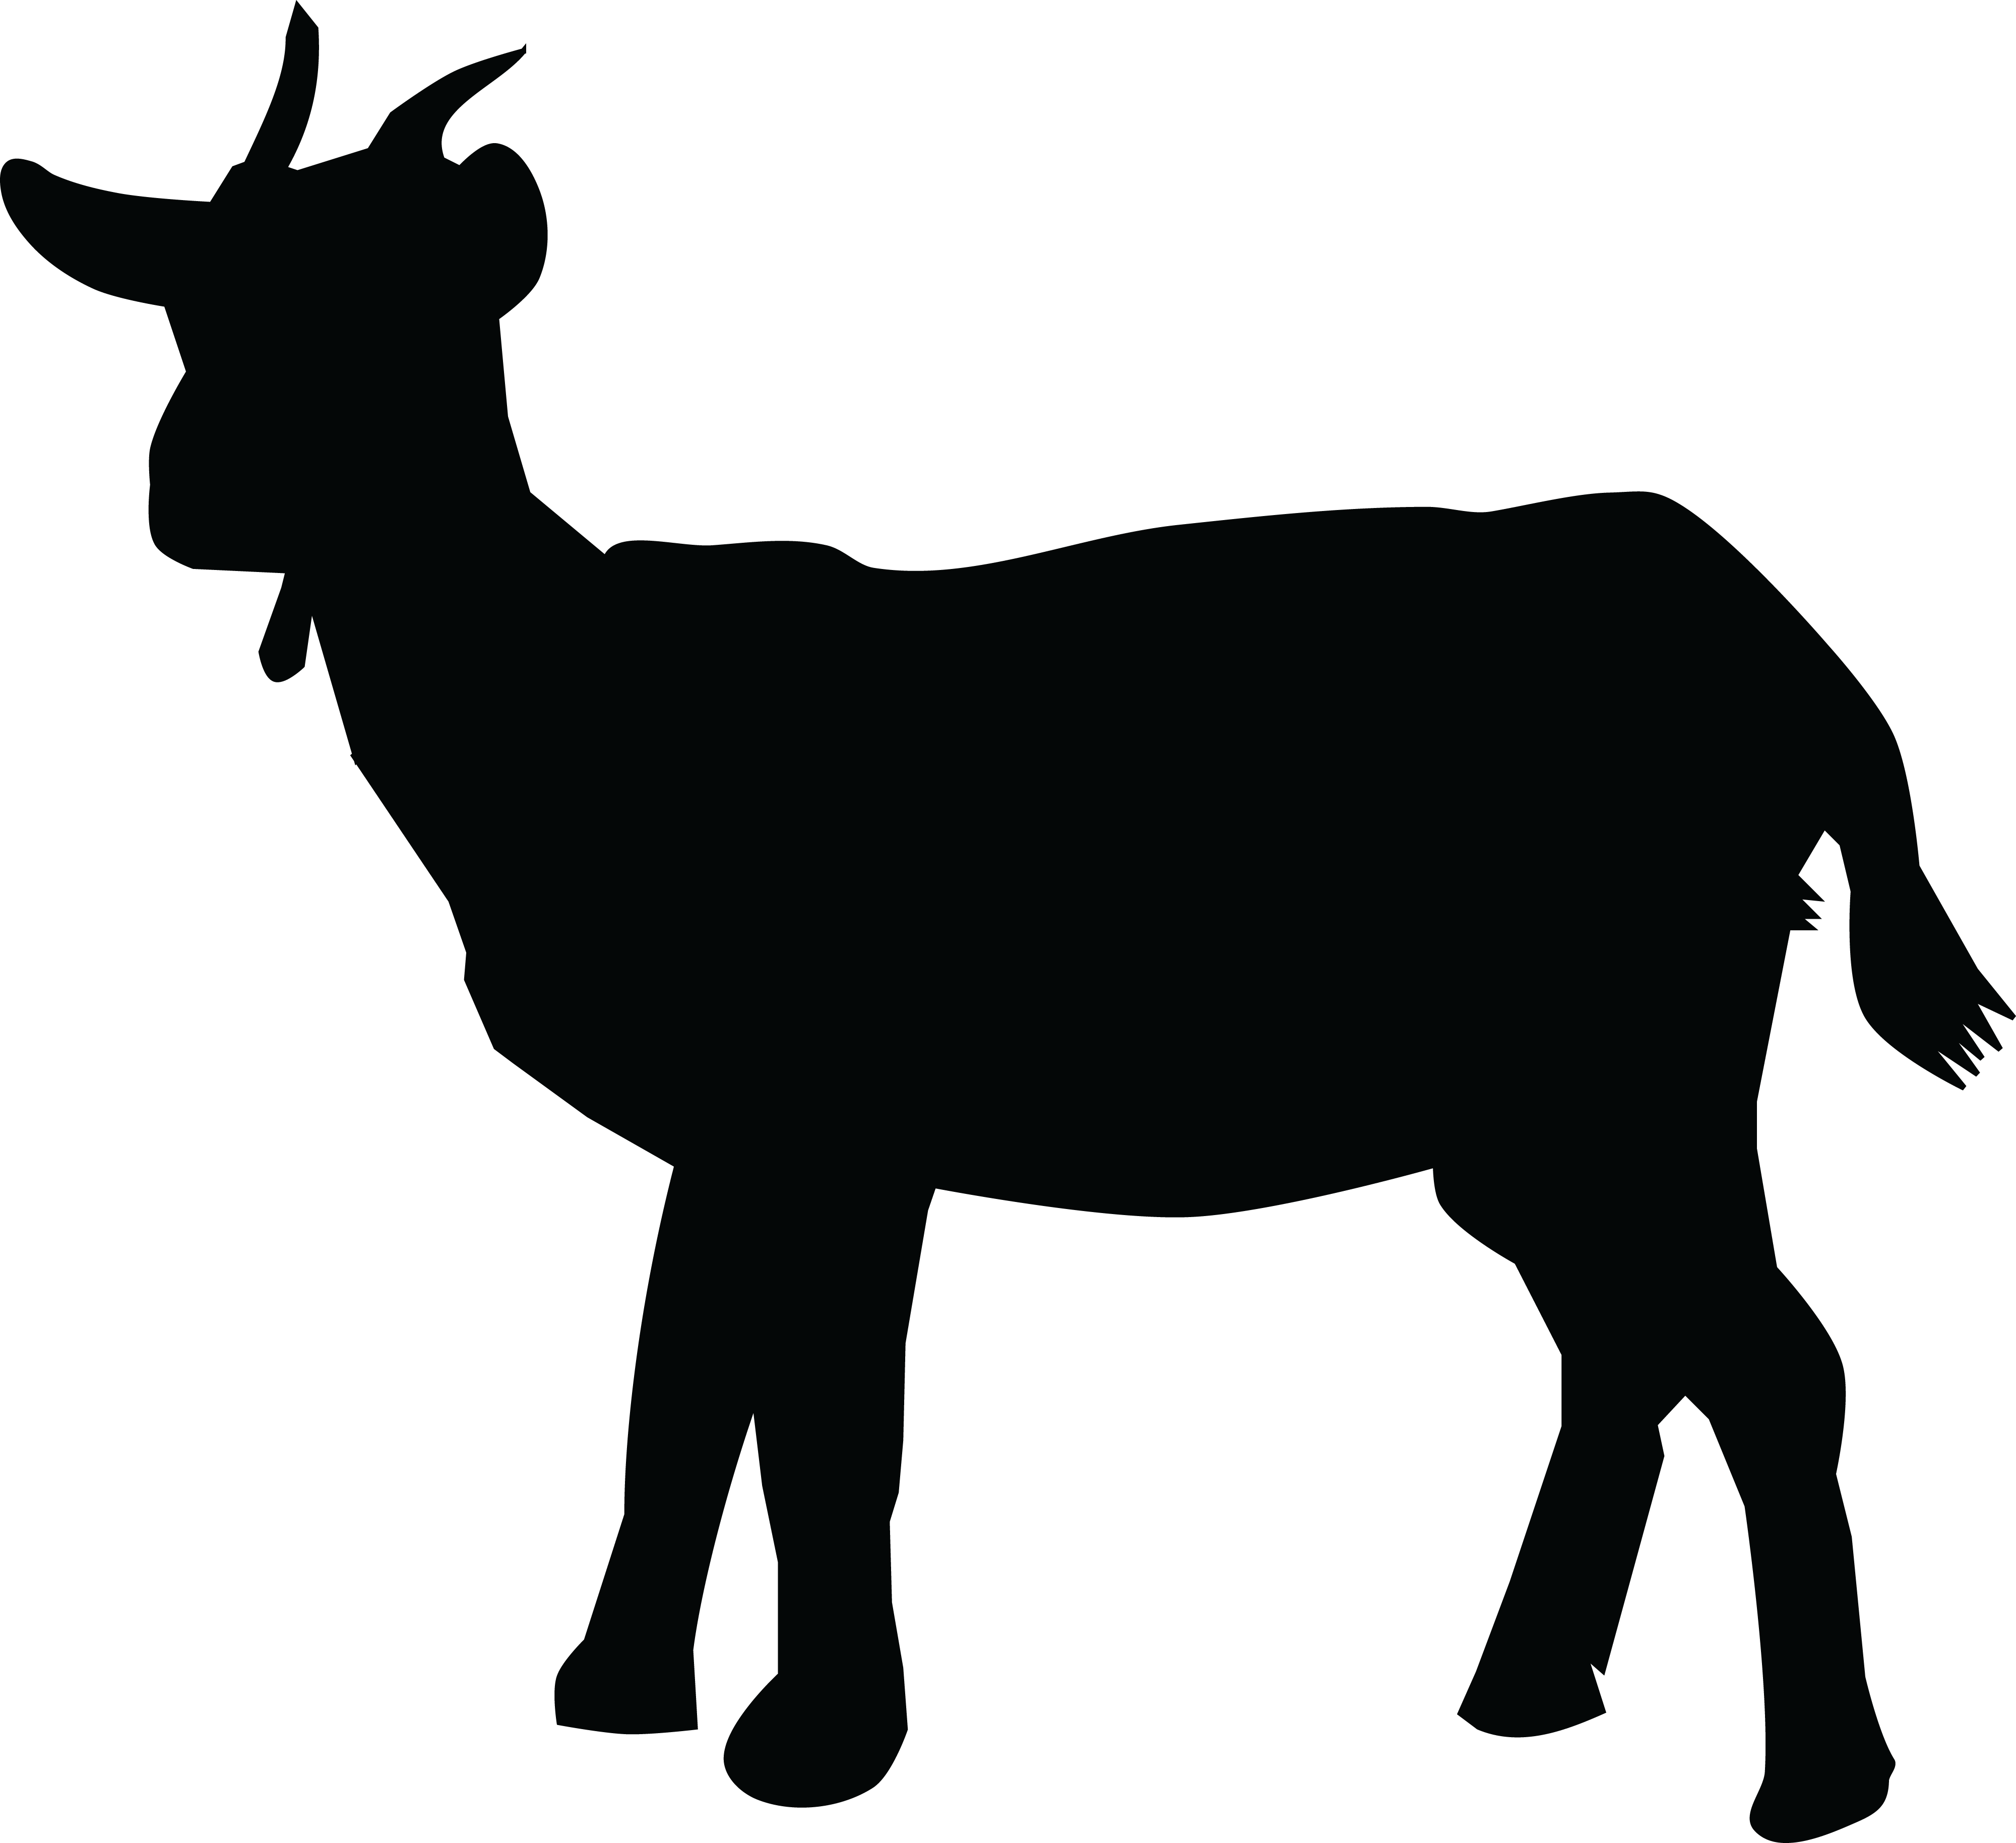 clipart transparent stock Goat clipart black and white. Dairy silhouette at getdrawings